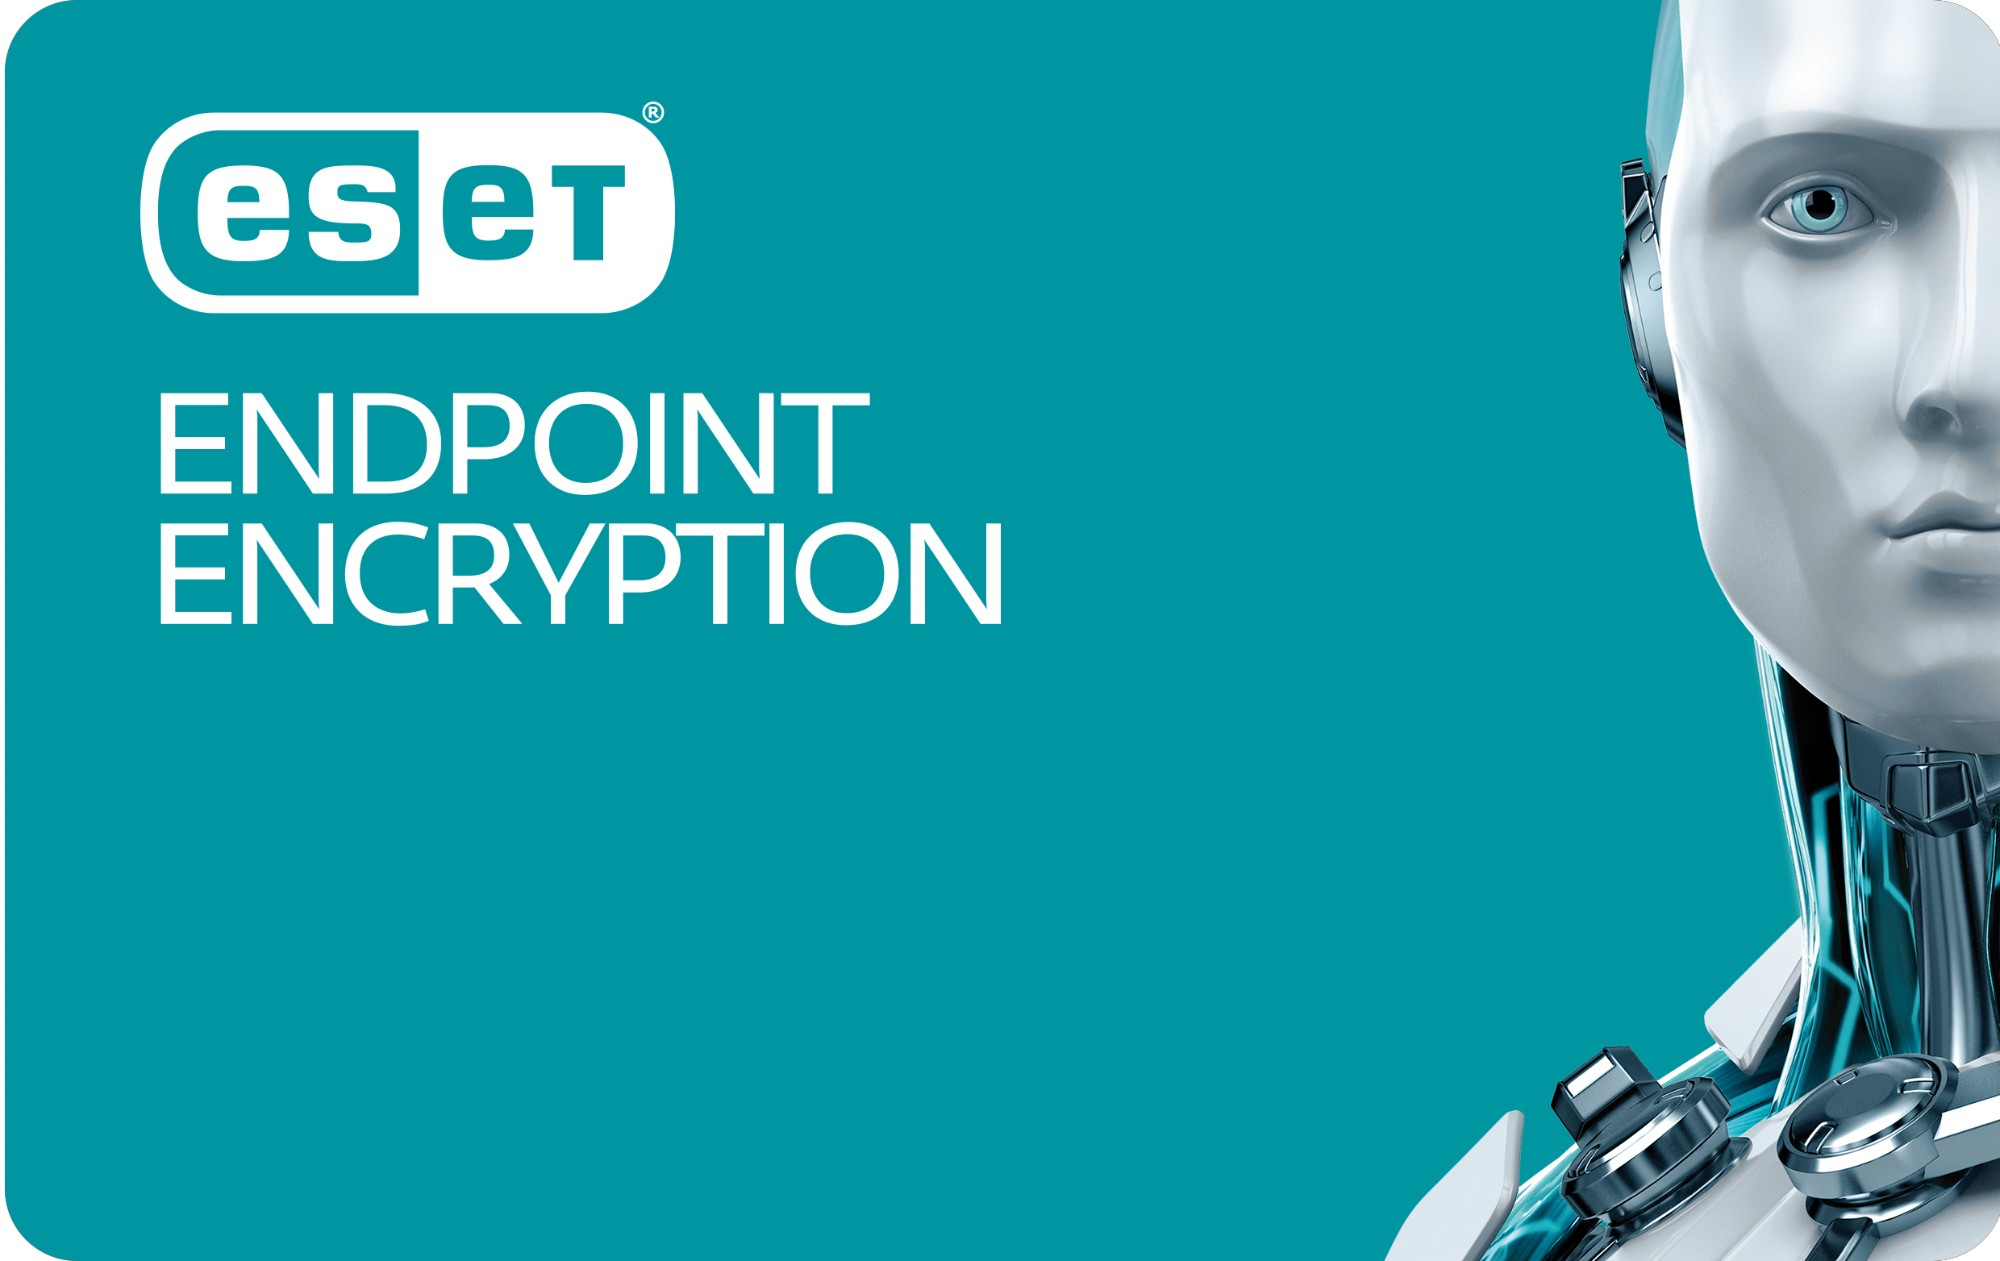 ESET Endpoint Encryption Pro 500 - 999 User Government (GOV) license 500 - 999 license(s) 1 year(s)